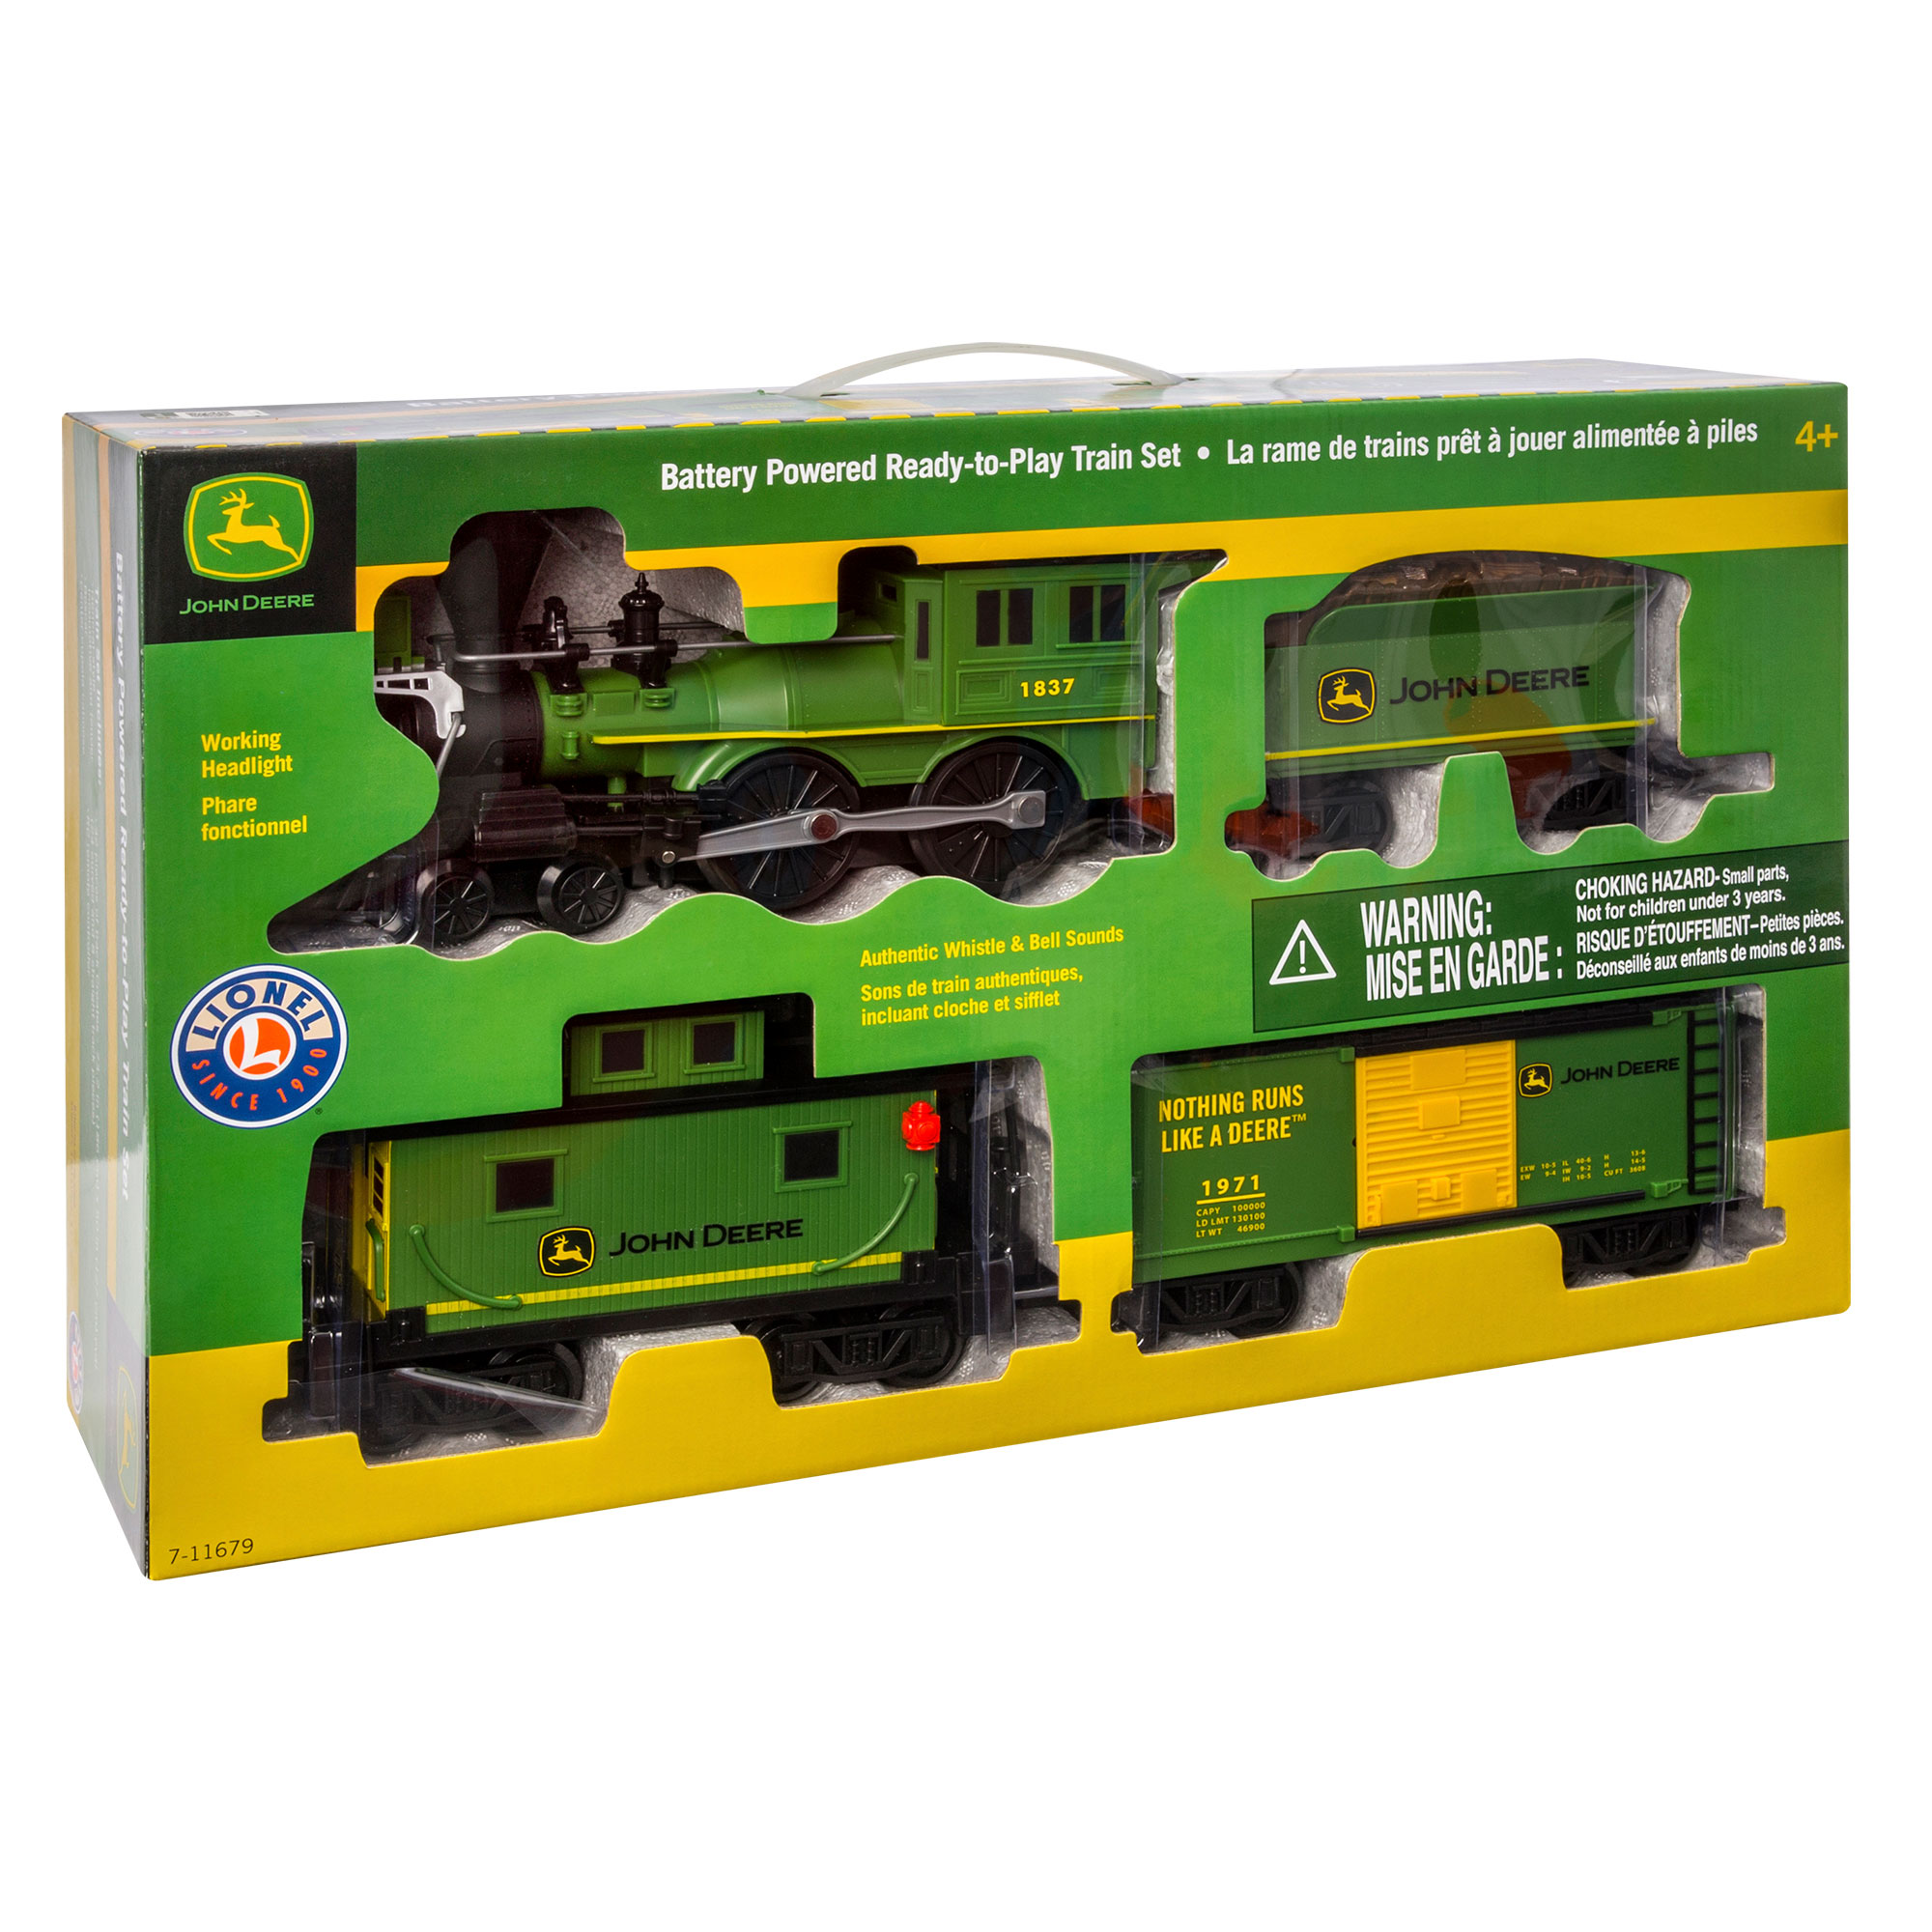 Lionel Electric Toy Trains Guide And Troubleshooting Of Wiring Diagram For Battery Operated Toys John Deere Tractor Ready To Play Kids Model Train Set 23922116796 Ebay Sets Santa Fe Express